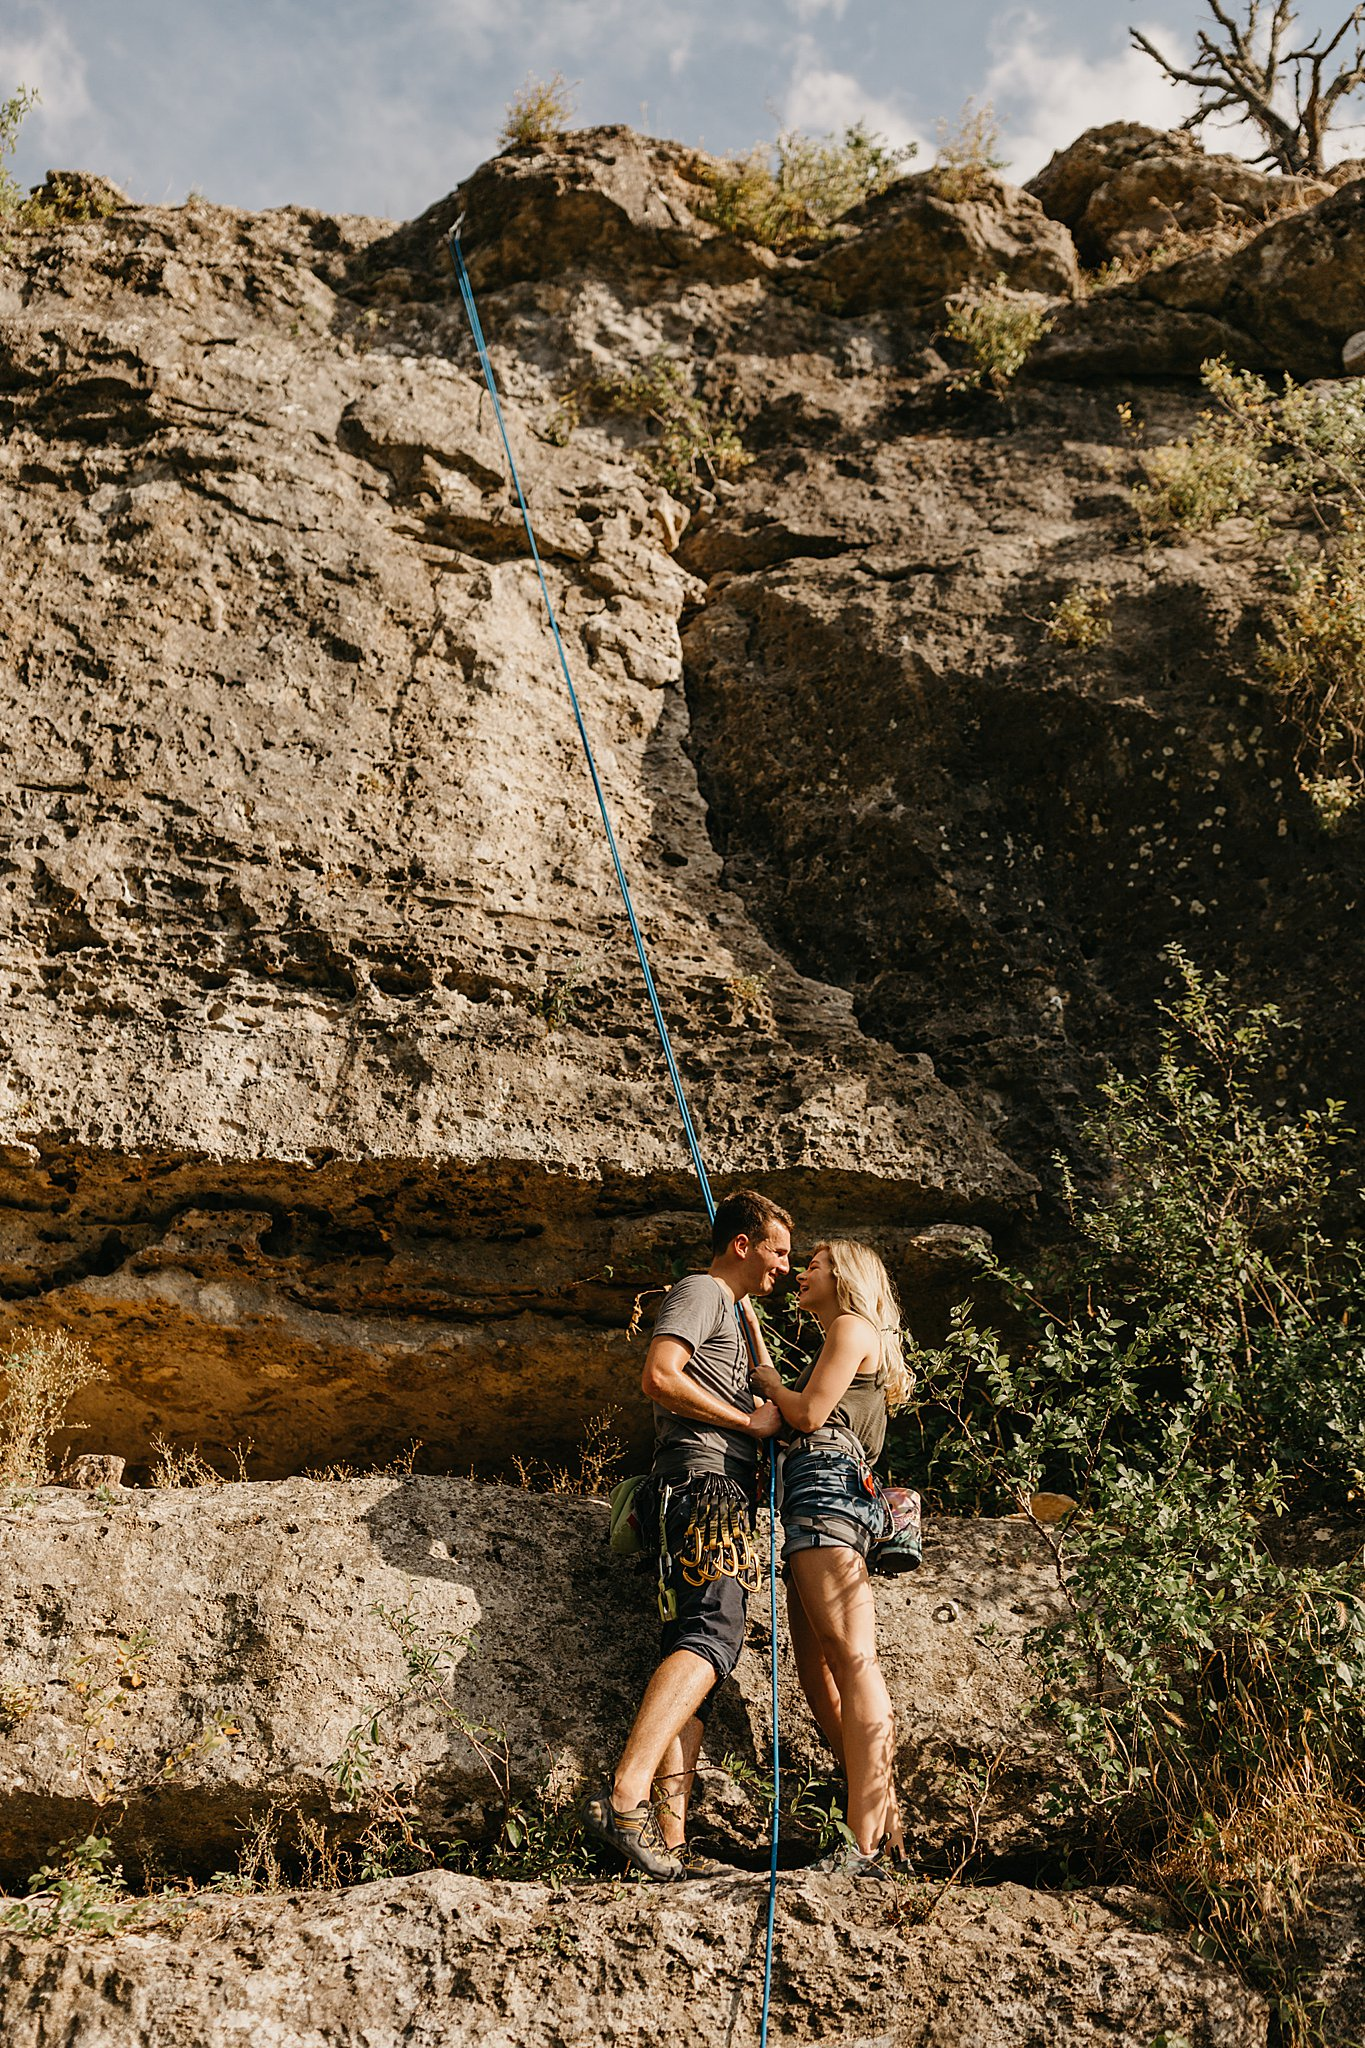 Wilderlove Co_Wedding Photographer_Dripping Springs Photography_Adventure Engagemenet_Rock Climbing Engagement_Hill Country Photographer_North Texas Photographer_0008.jpg